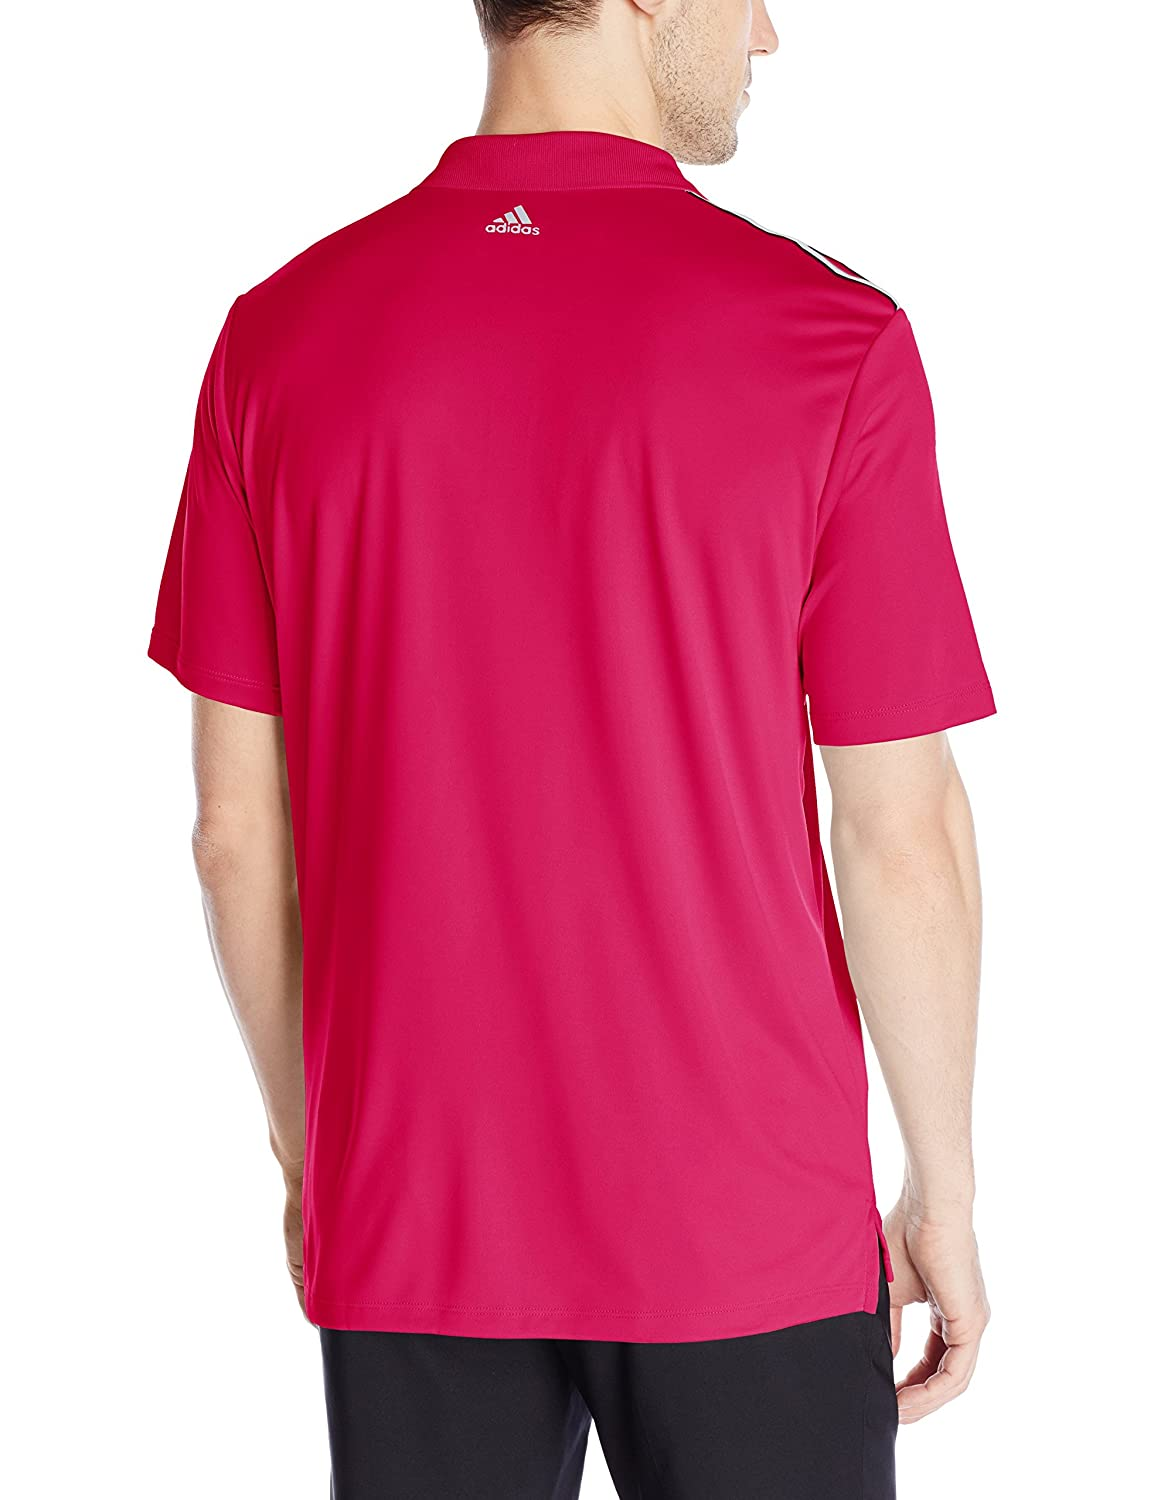 the best attitude f1bbe 71689 Adidas Golf Men s Climacool 3-Stripes Polo Shirt  Amazon.ca  Sports    Outdoors